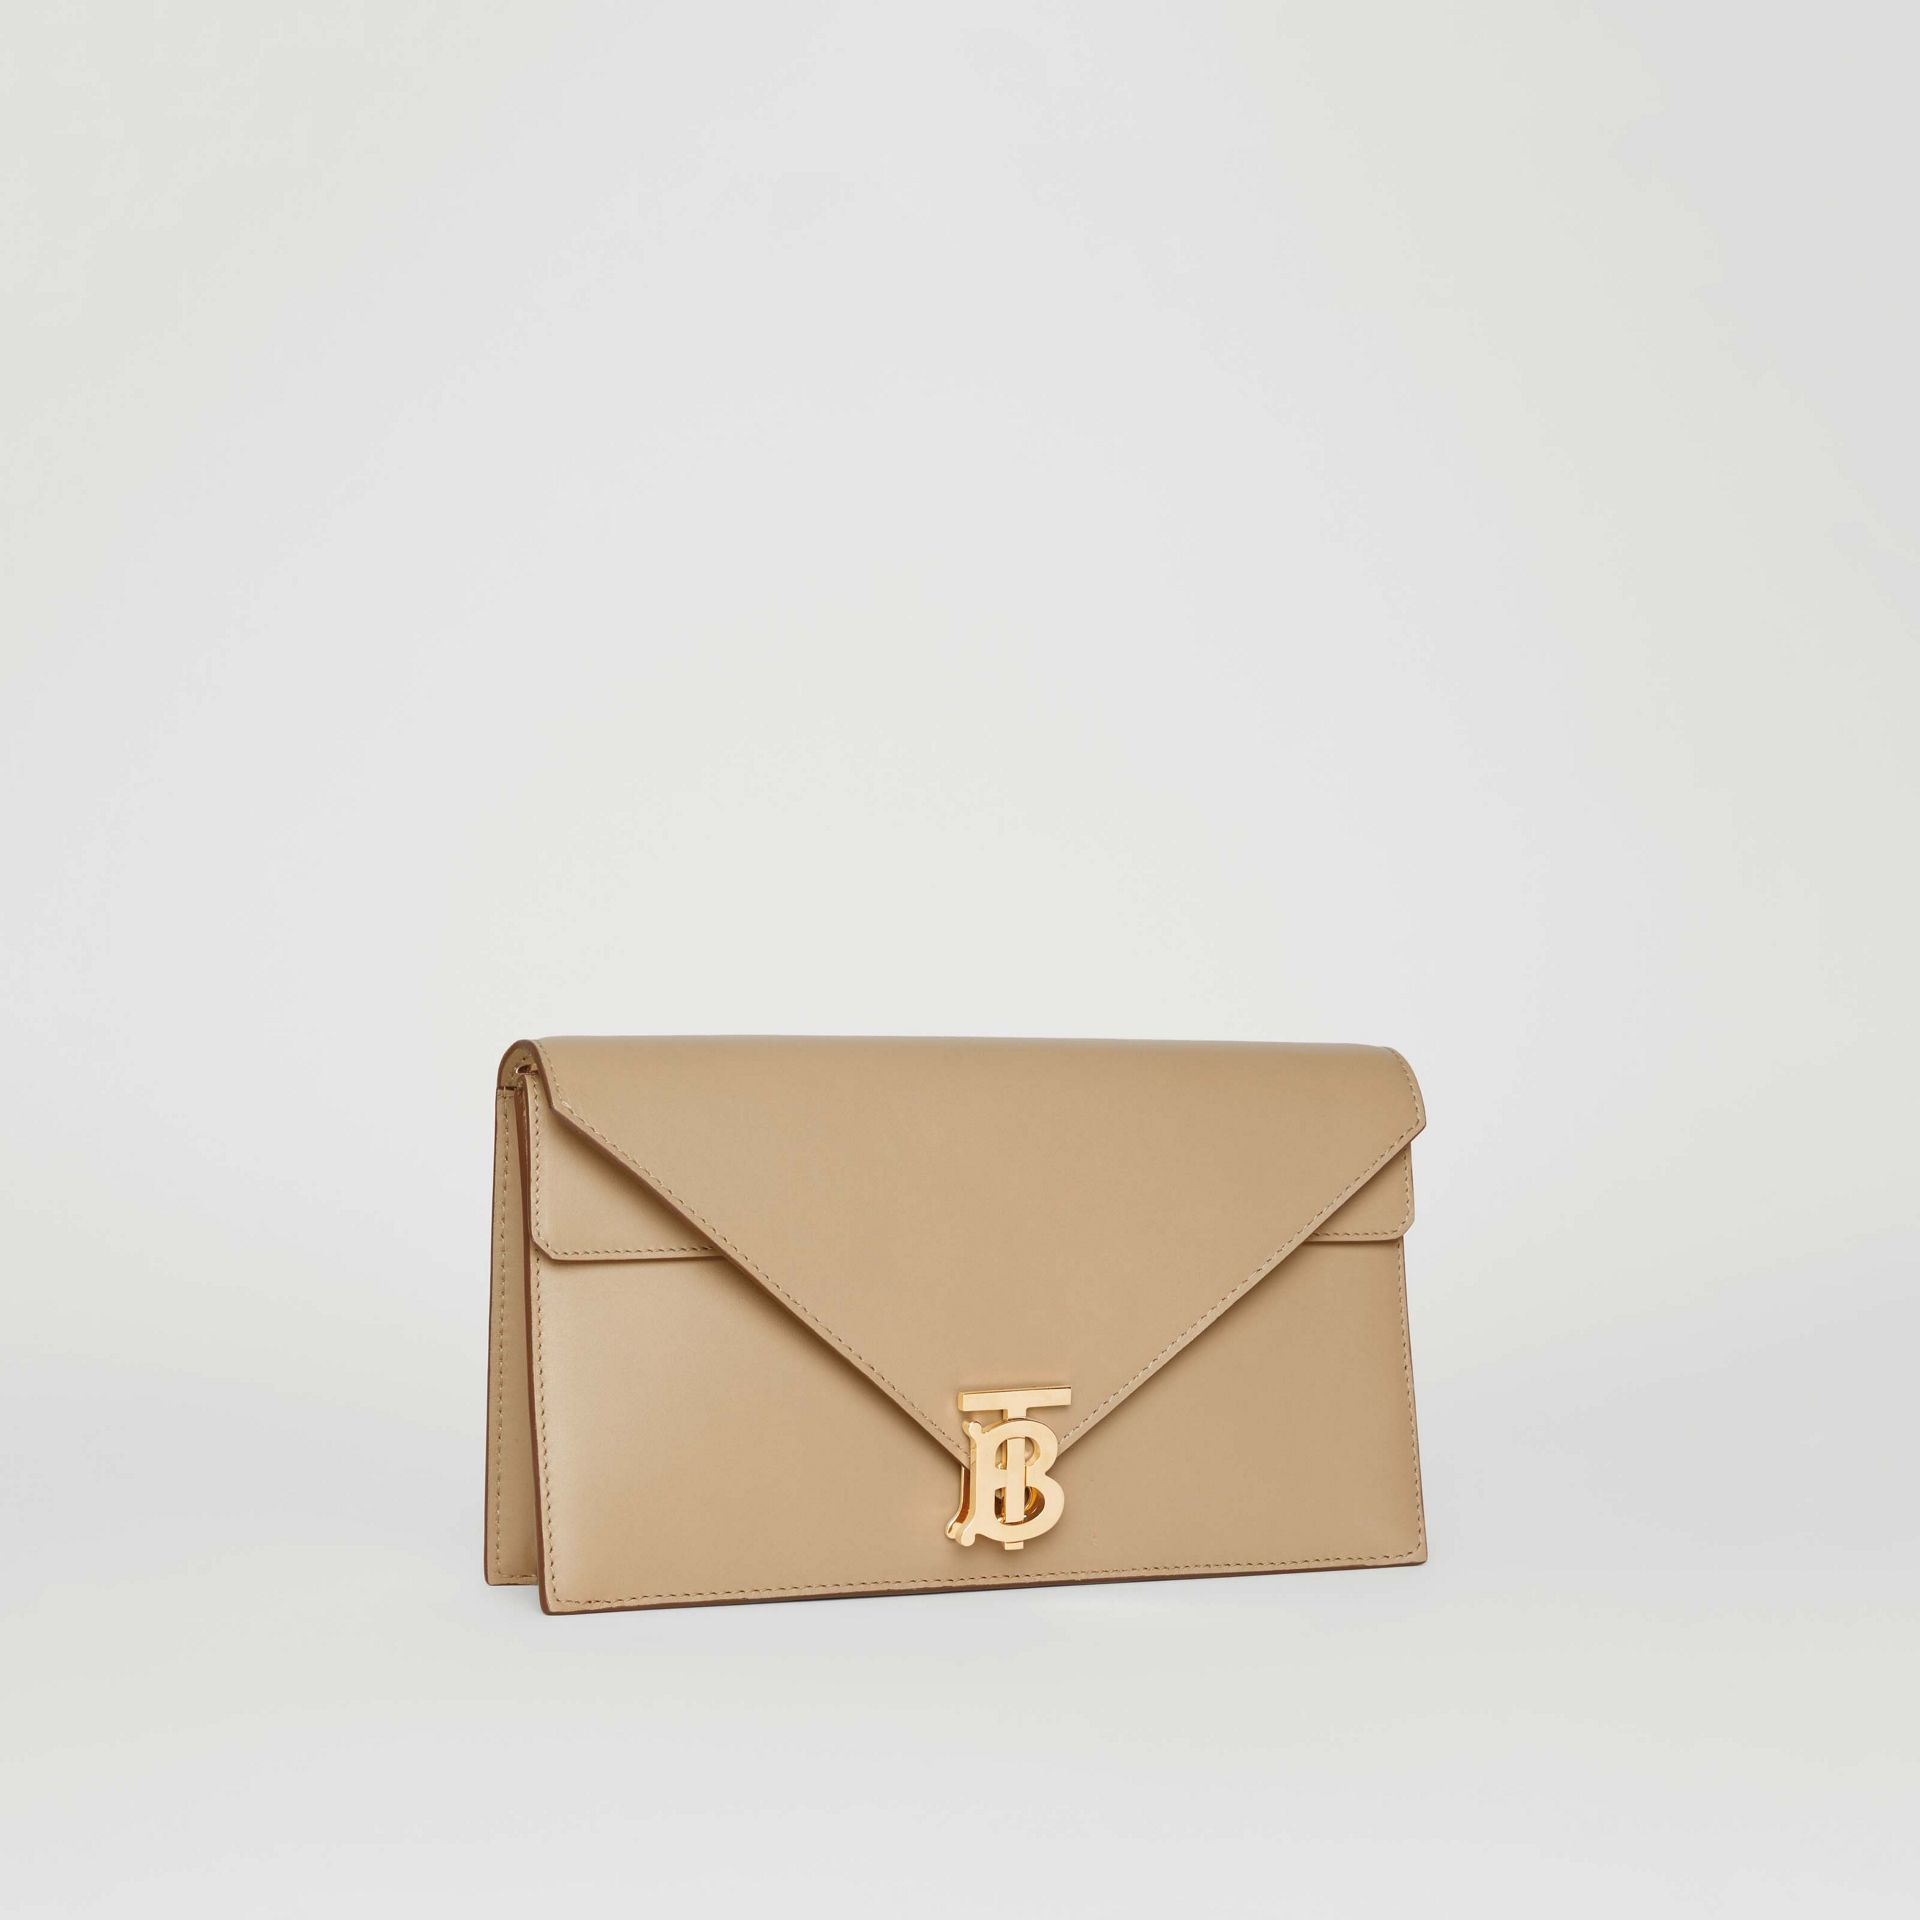 Small Leather TB Envelope Clutch in Honey - Women | Burberry - gallery image 6